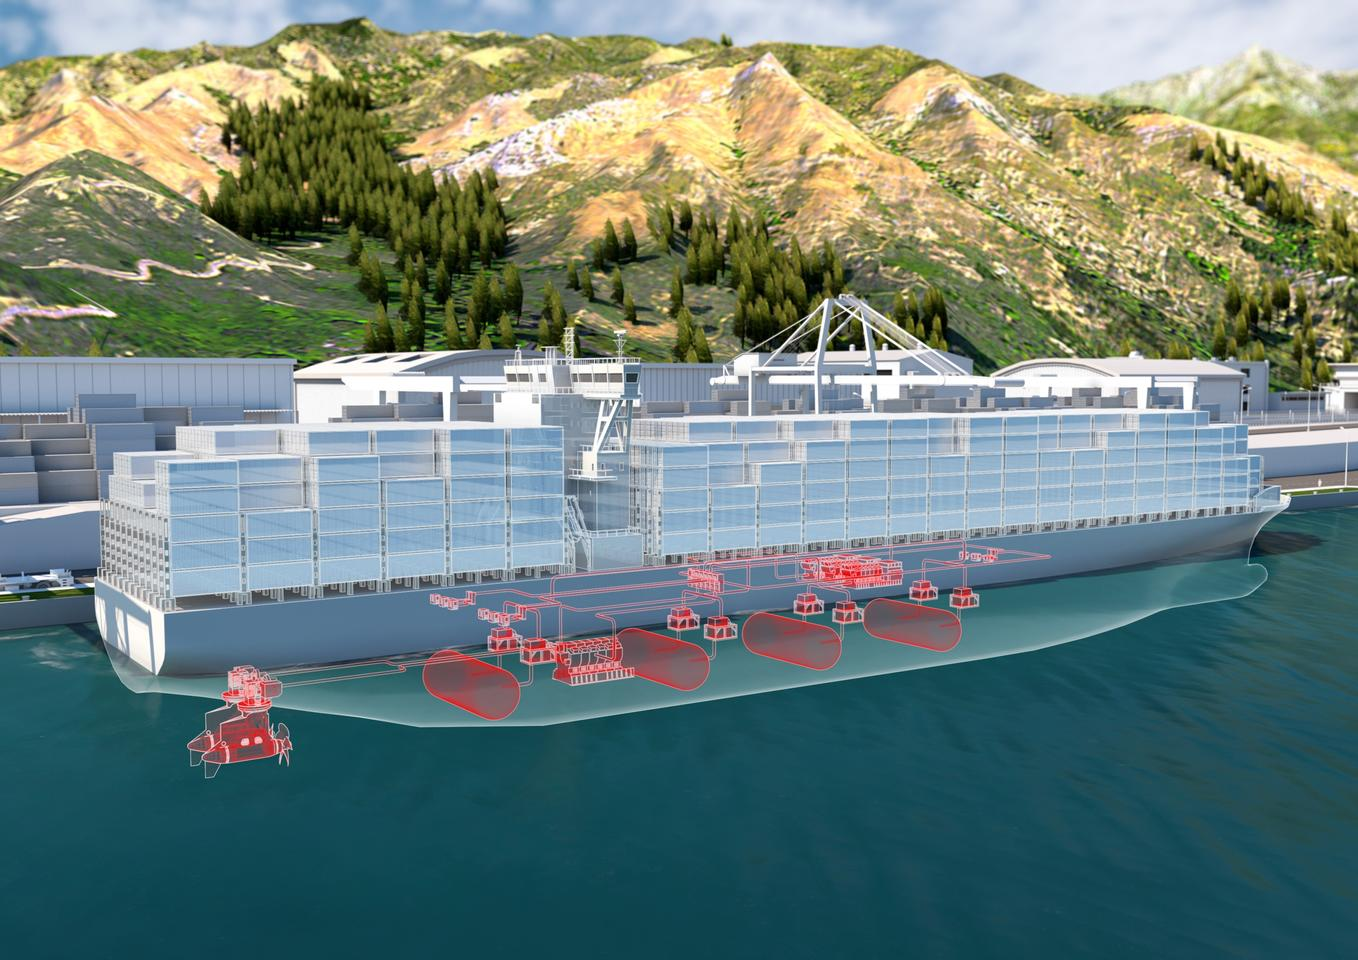 ABB and Hydrogene de France are teaming up to build enormous hydrogen fuel cell powertrains for large marine vessels